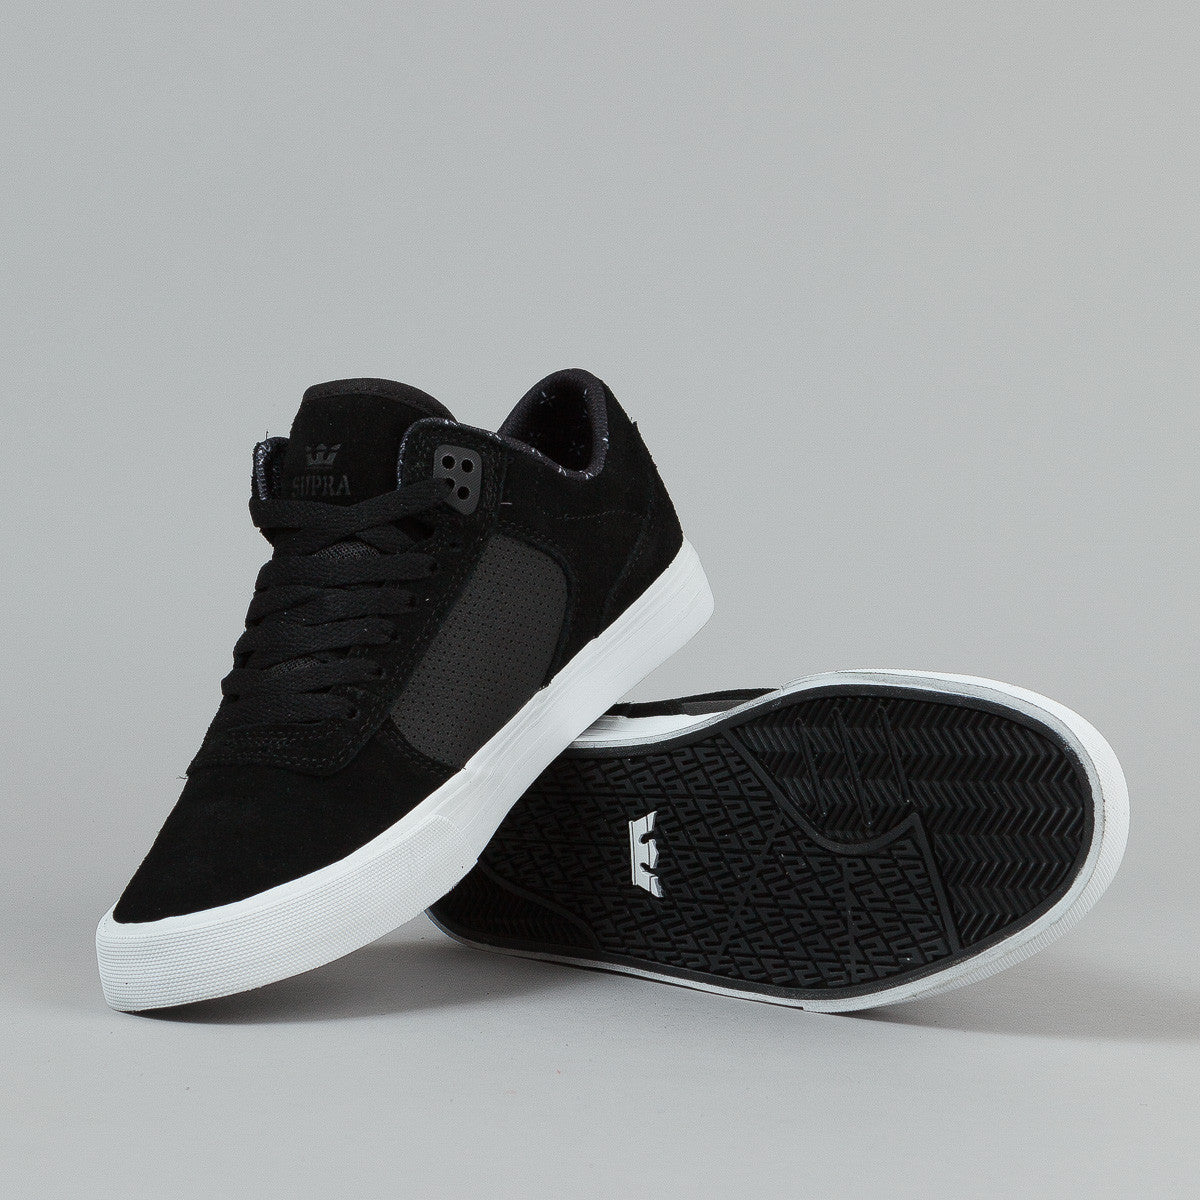 Supra Erik Ellington Vulc Shoes - Black - White